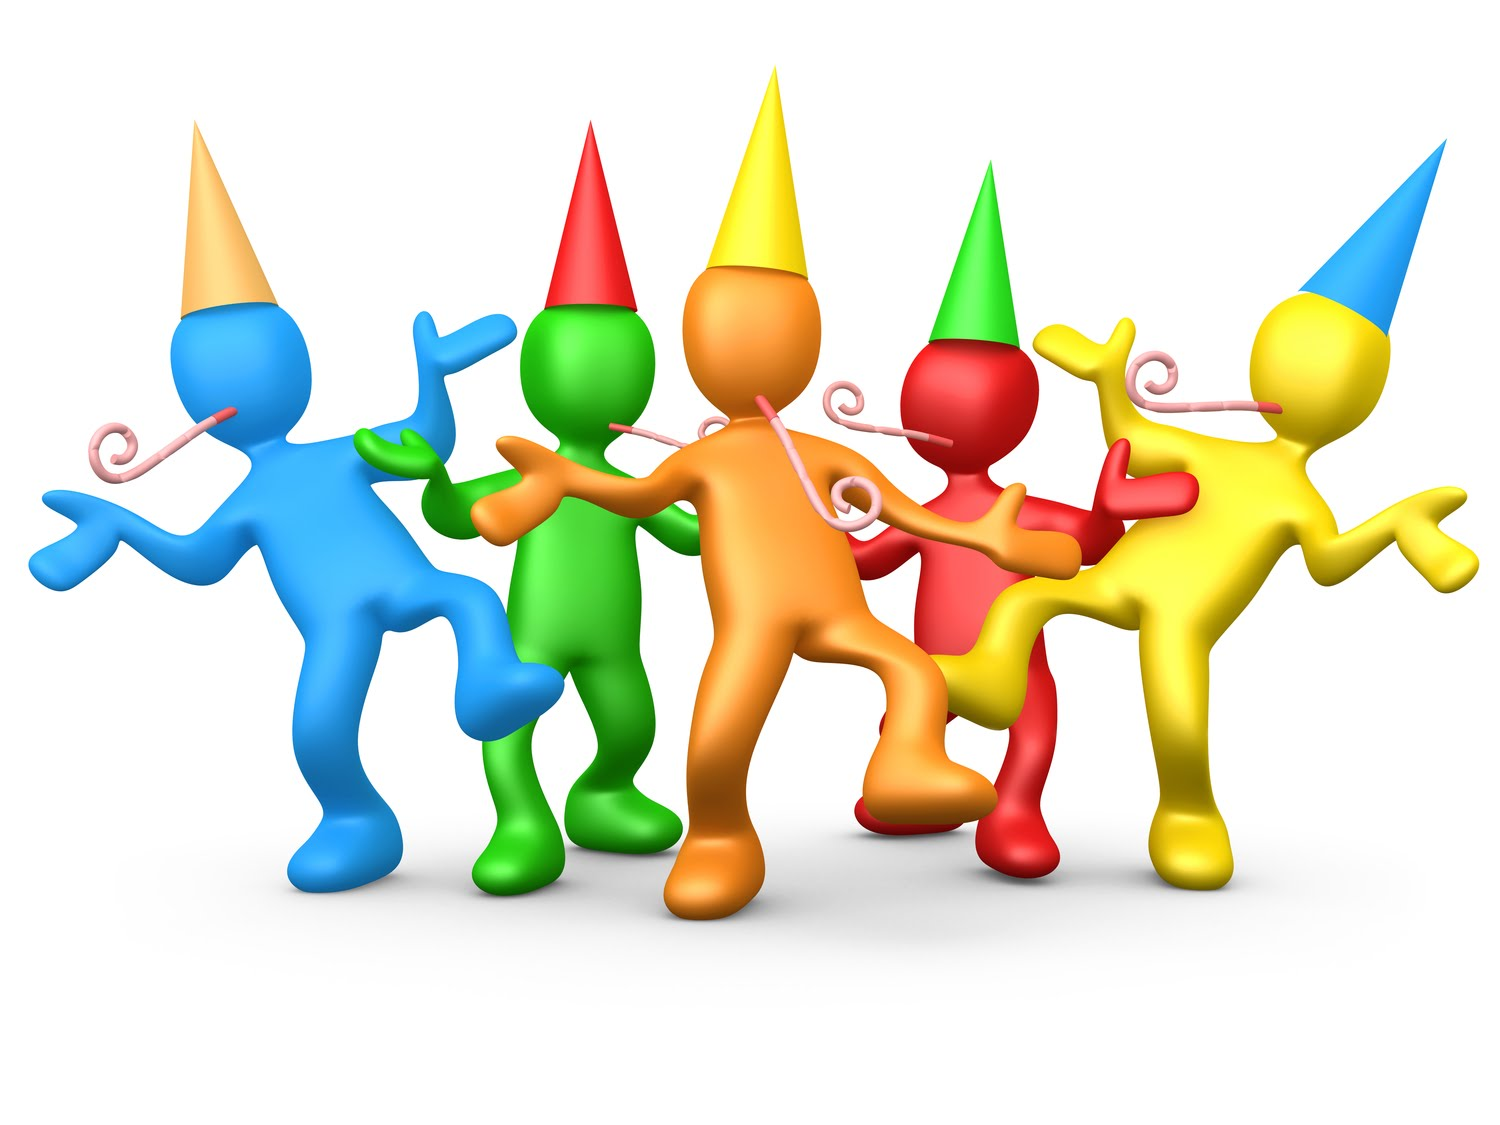 image free stock Free download best . Office party clipart